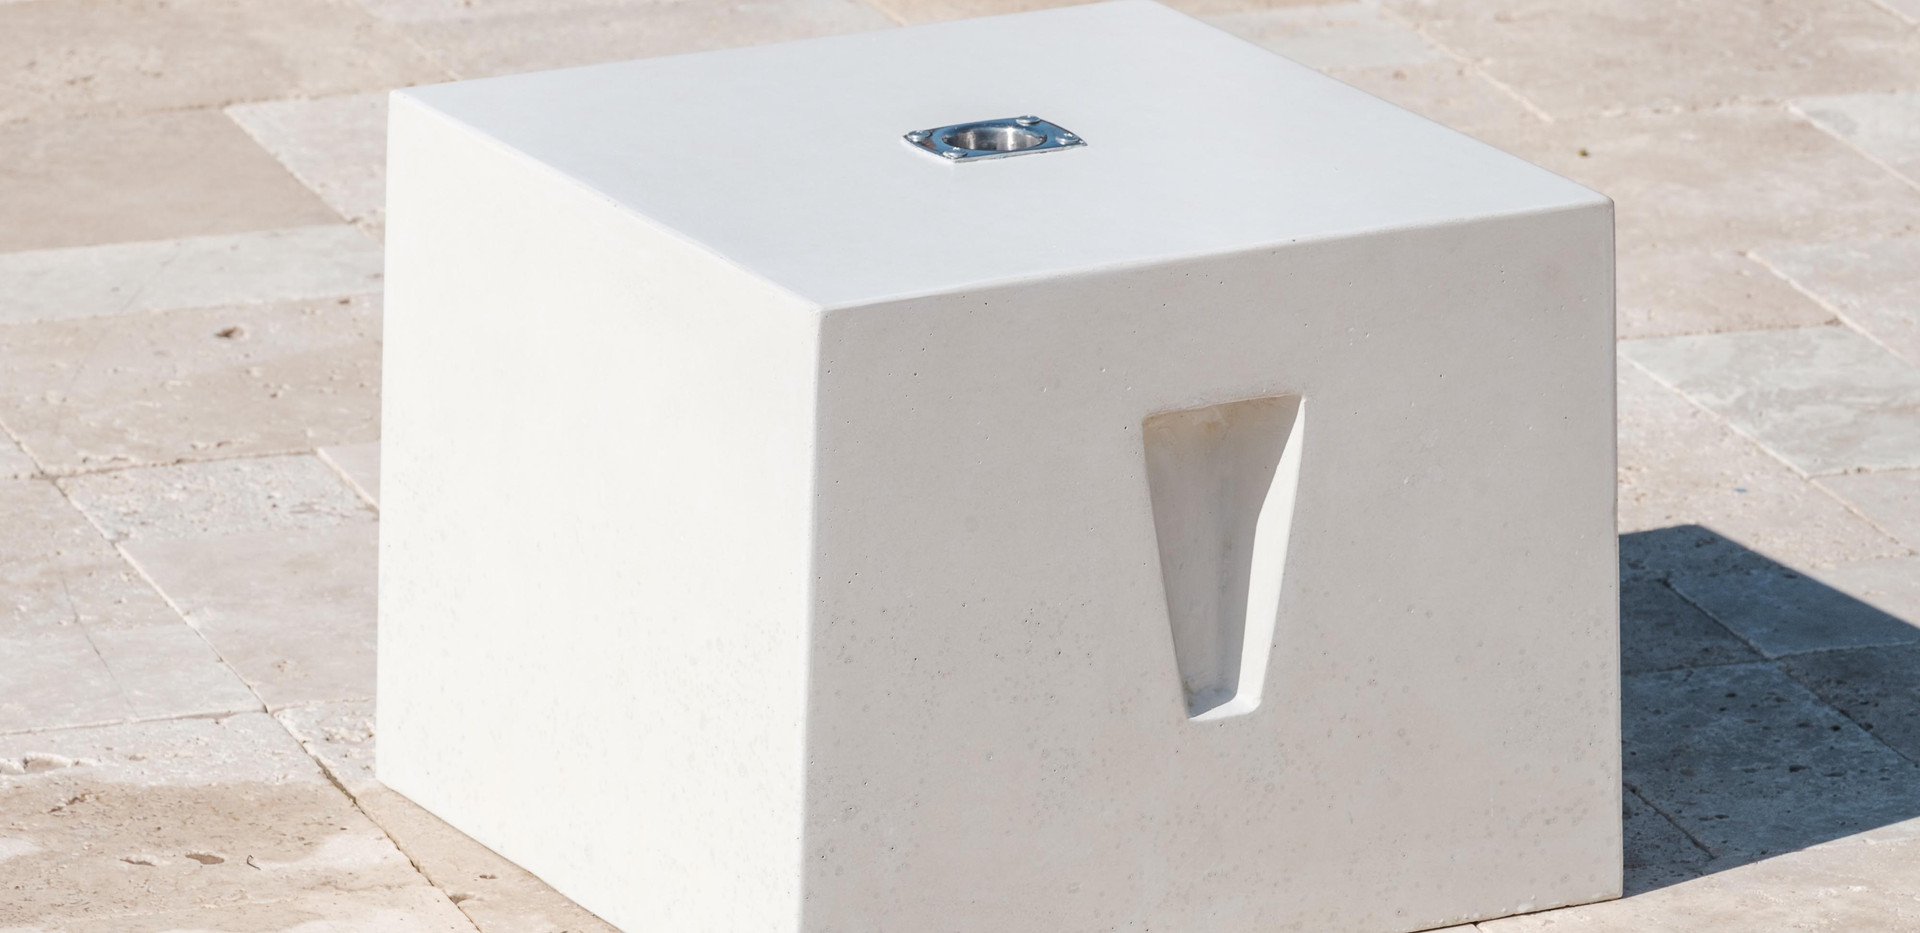 The Cube a side table